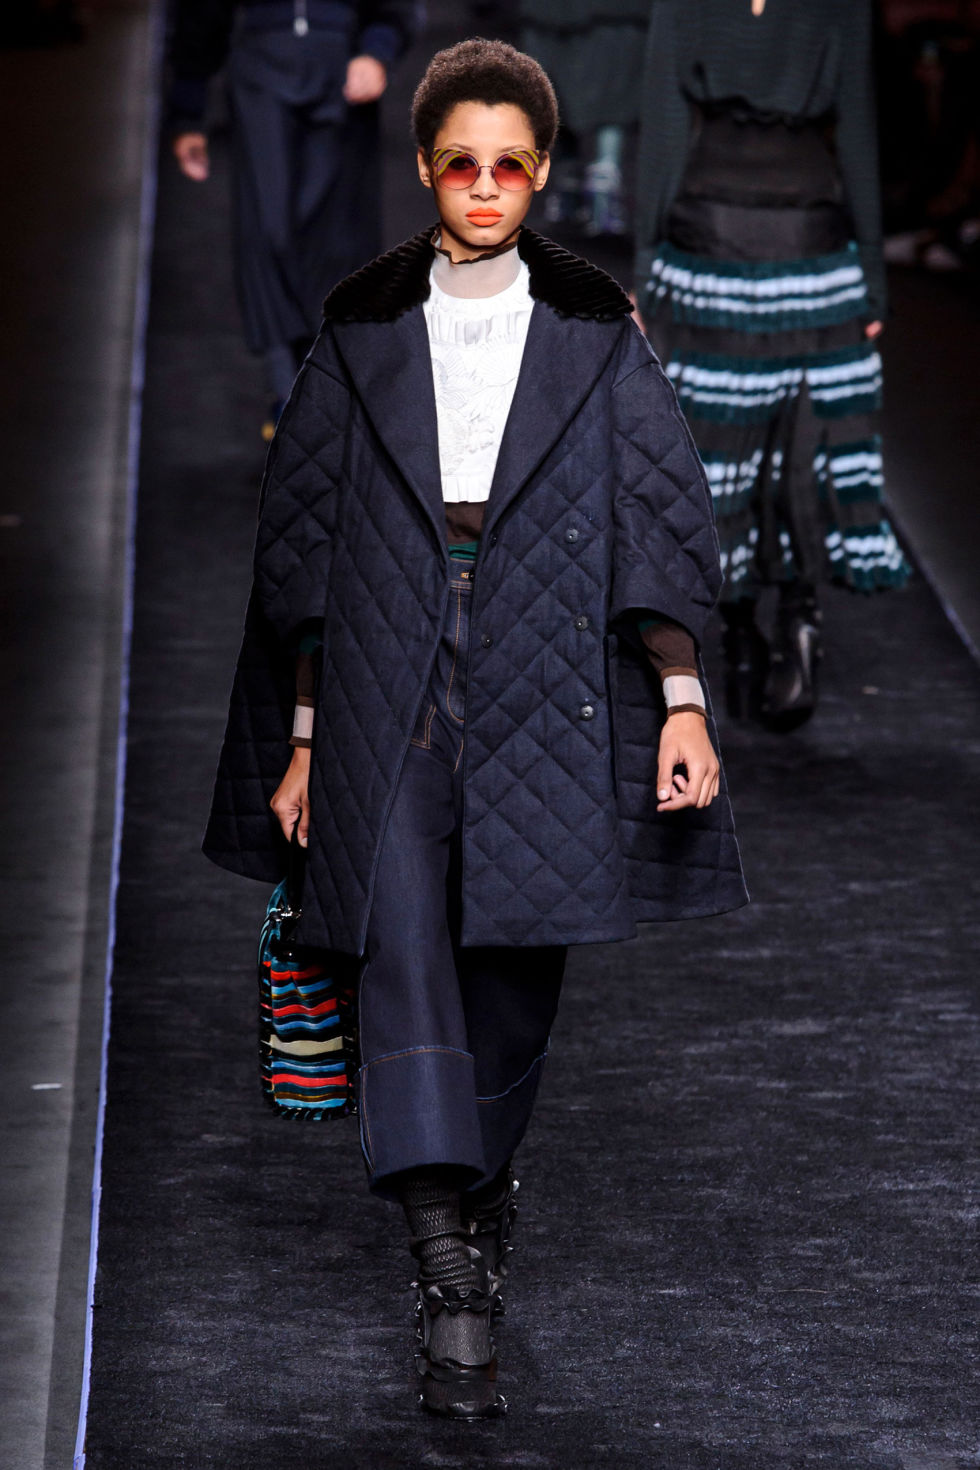 Milan Fashion Week #MFW Autumn/Winter 2016 Fendi